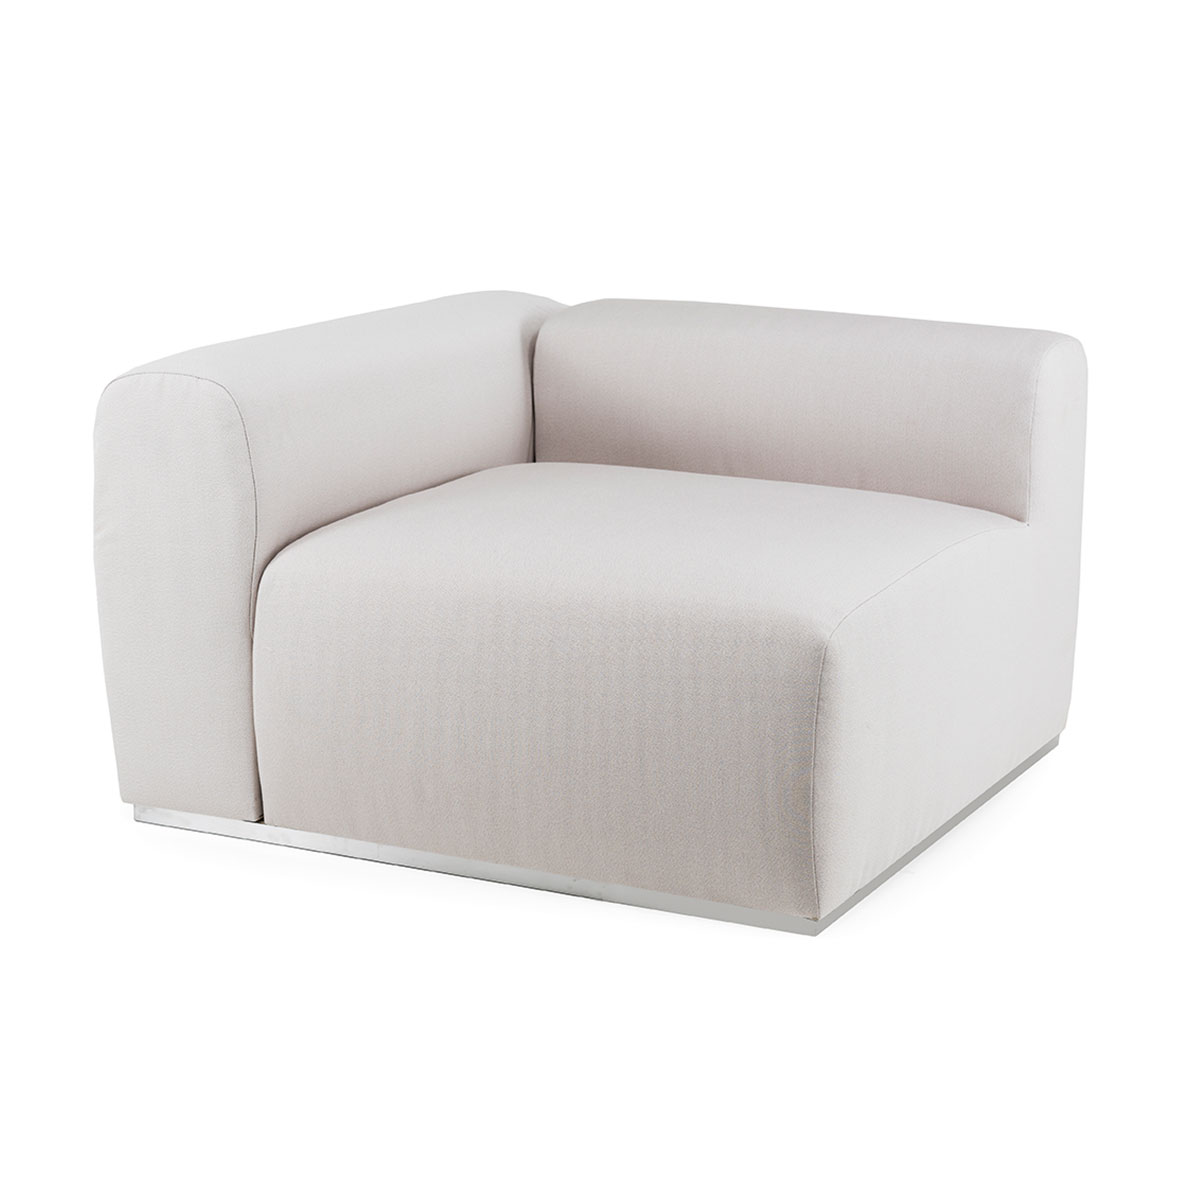 Angular module Sofas Braid